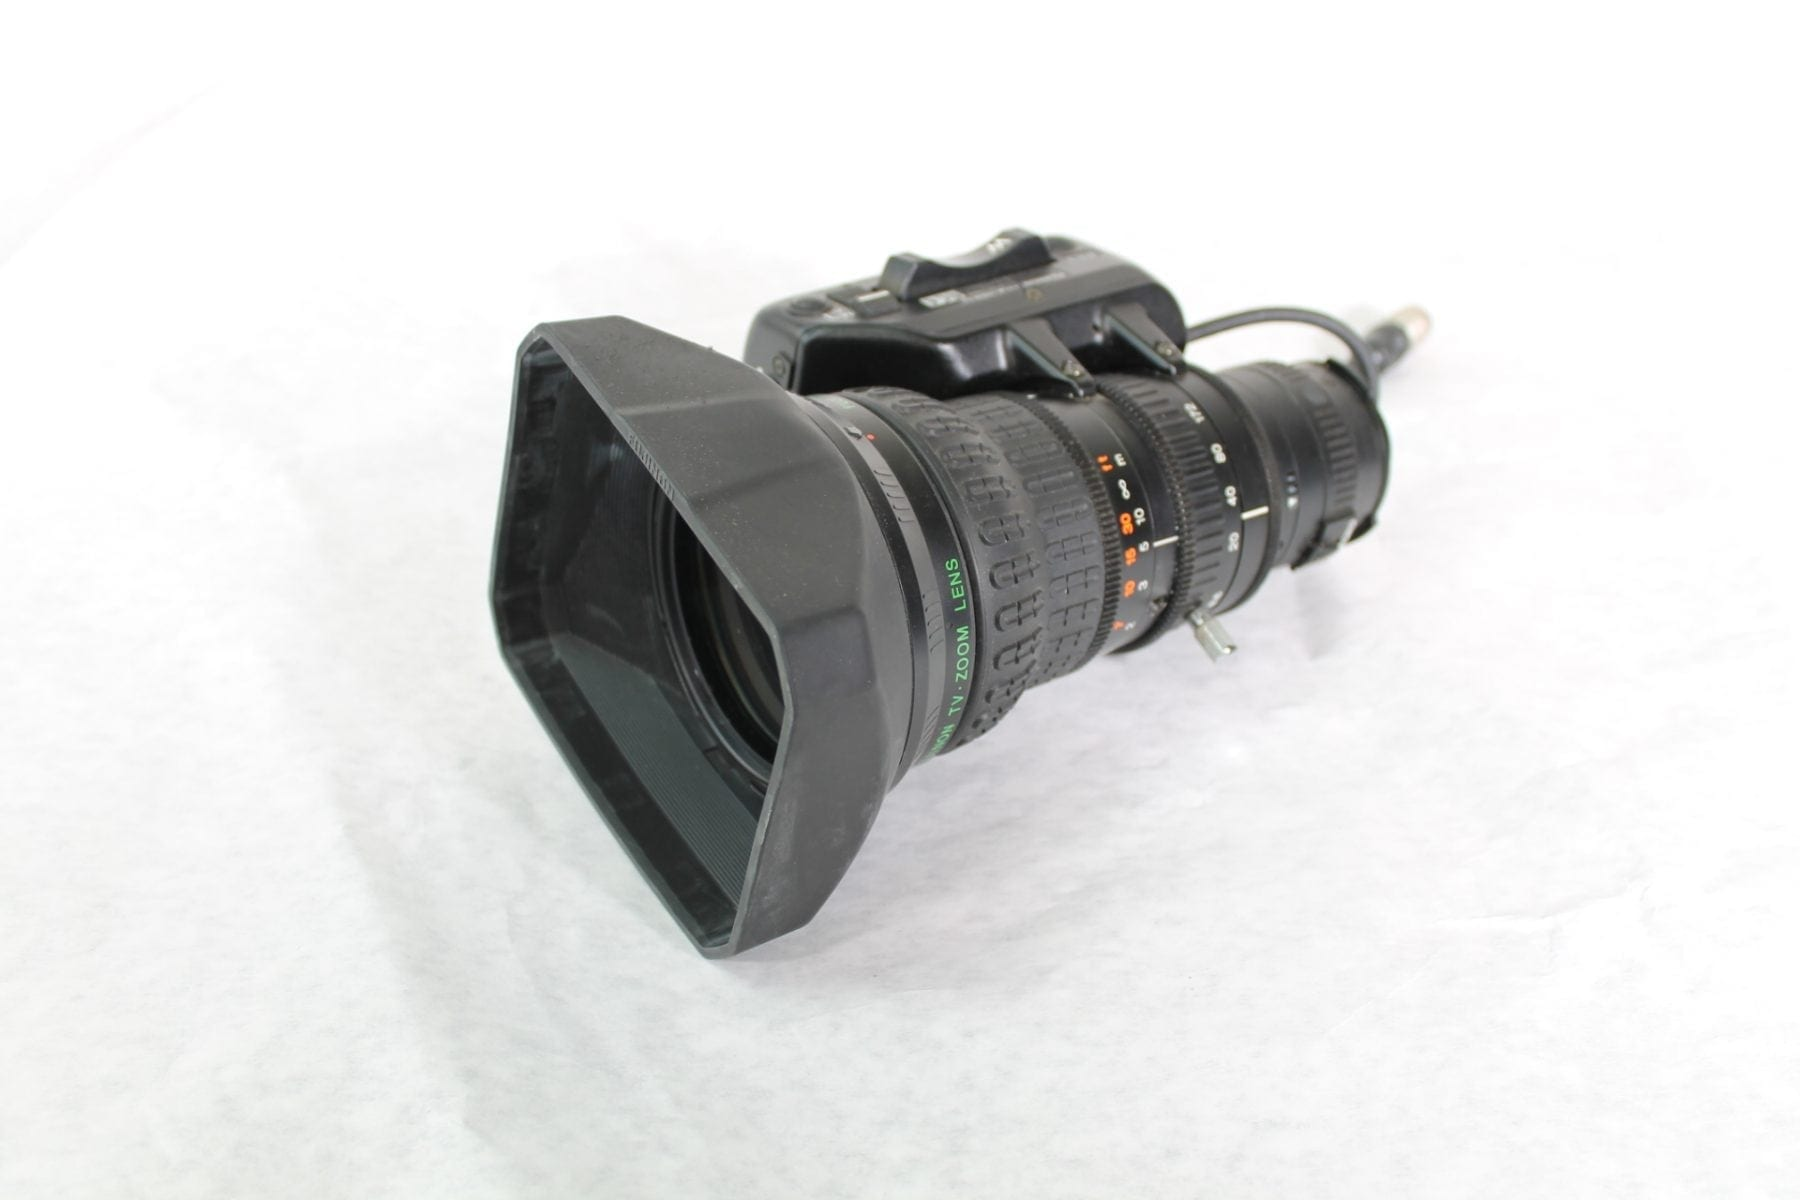 Fujinon A20X8.6BRM-SD 1:1.8/8.6-172mm Zoom Lens Main